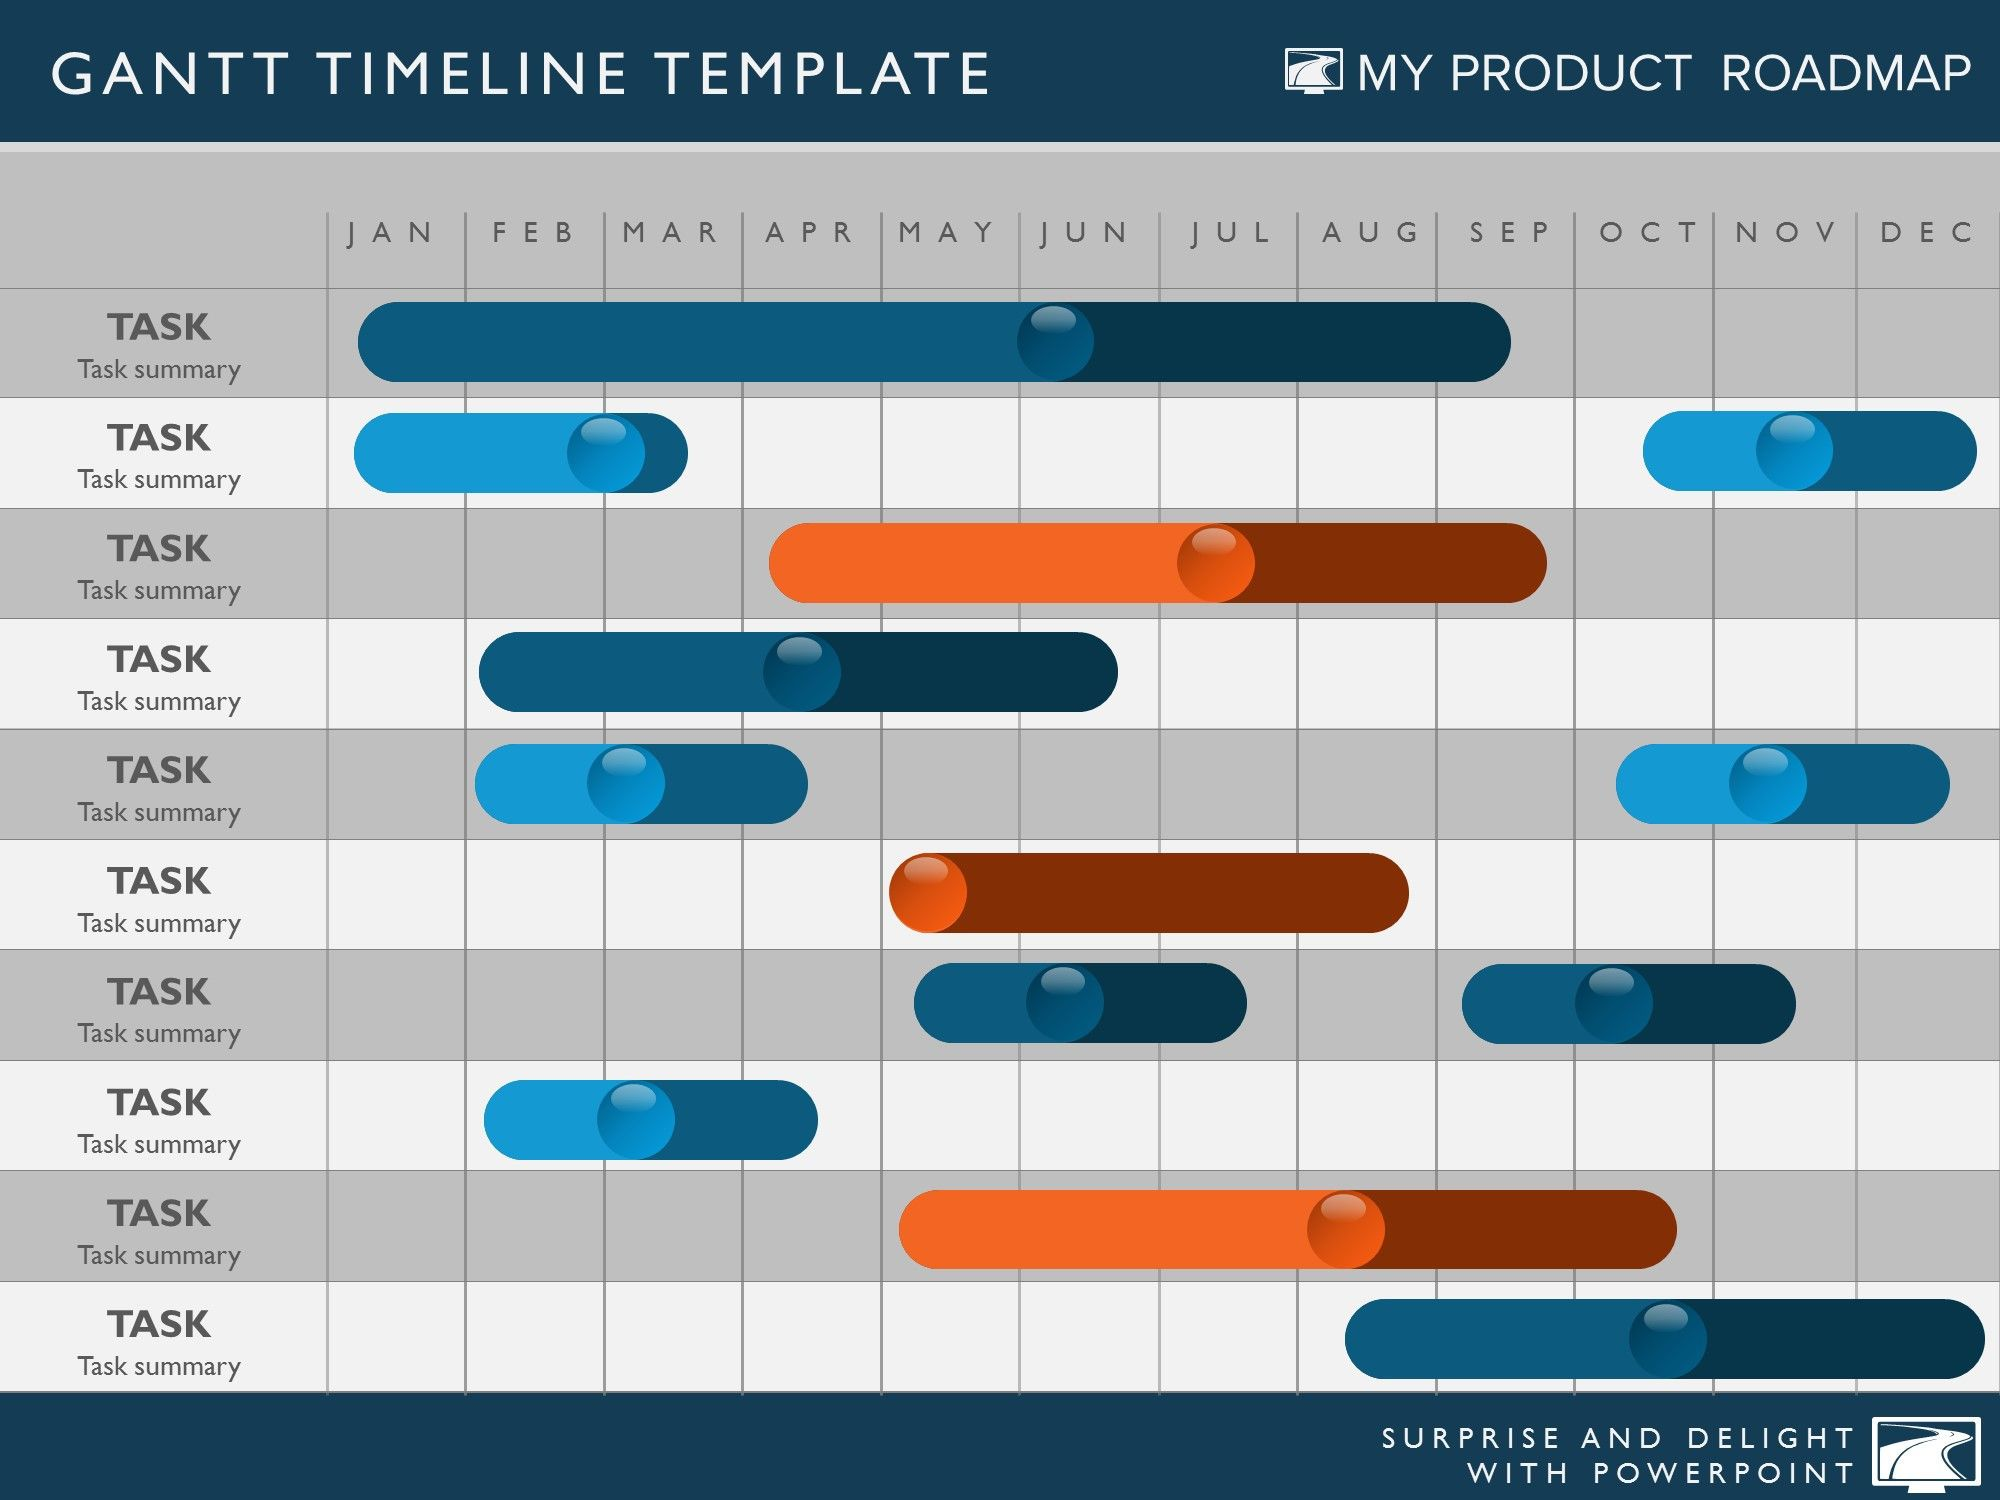 Timeline Template – My Product Roadmap Product's Roadmap